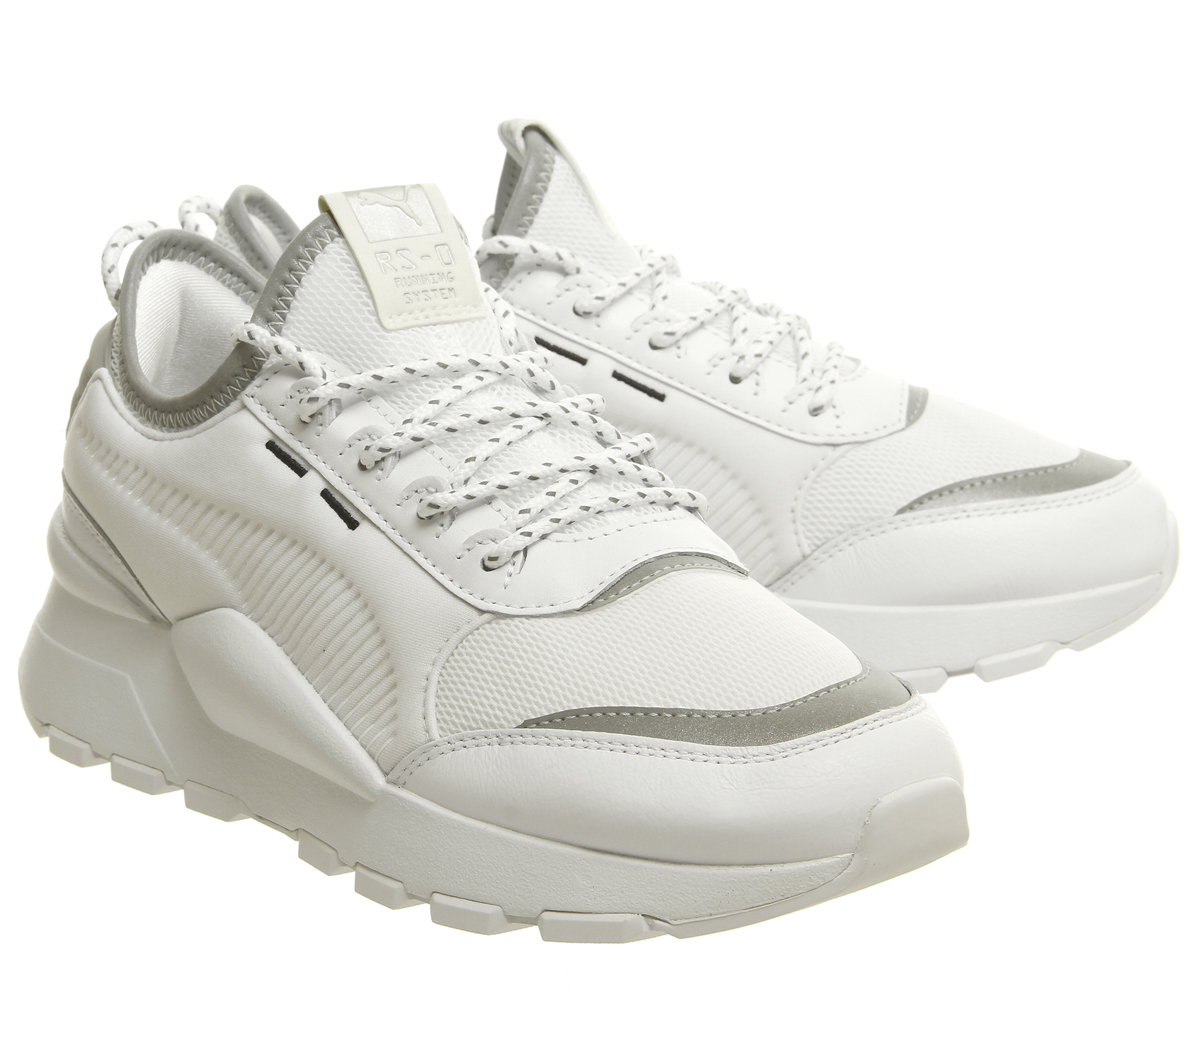 075591f1d5b Womens Puma Rs-0 Optic Trainers White White Silver Trainers Shoes